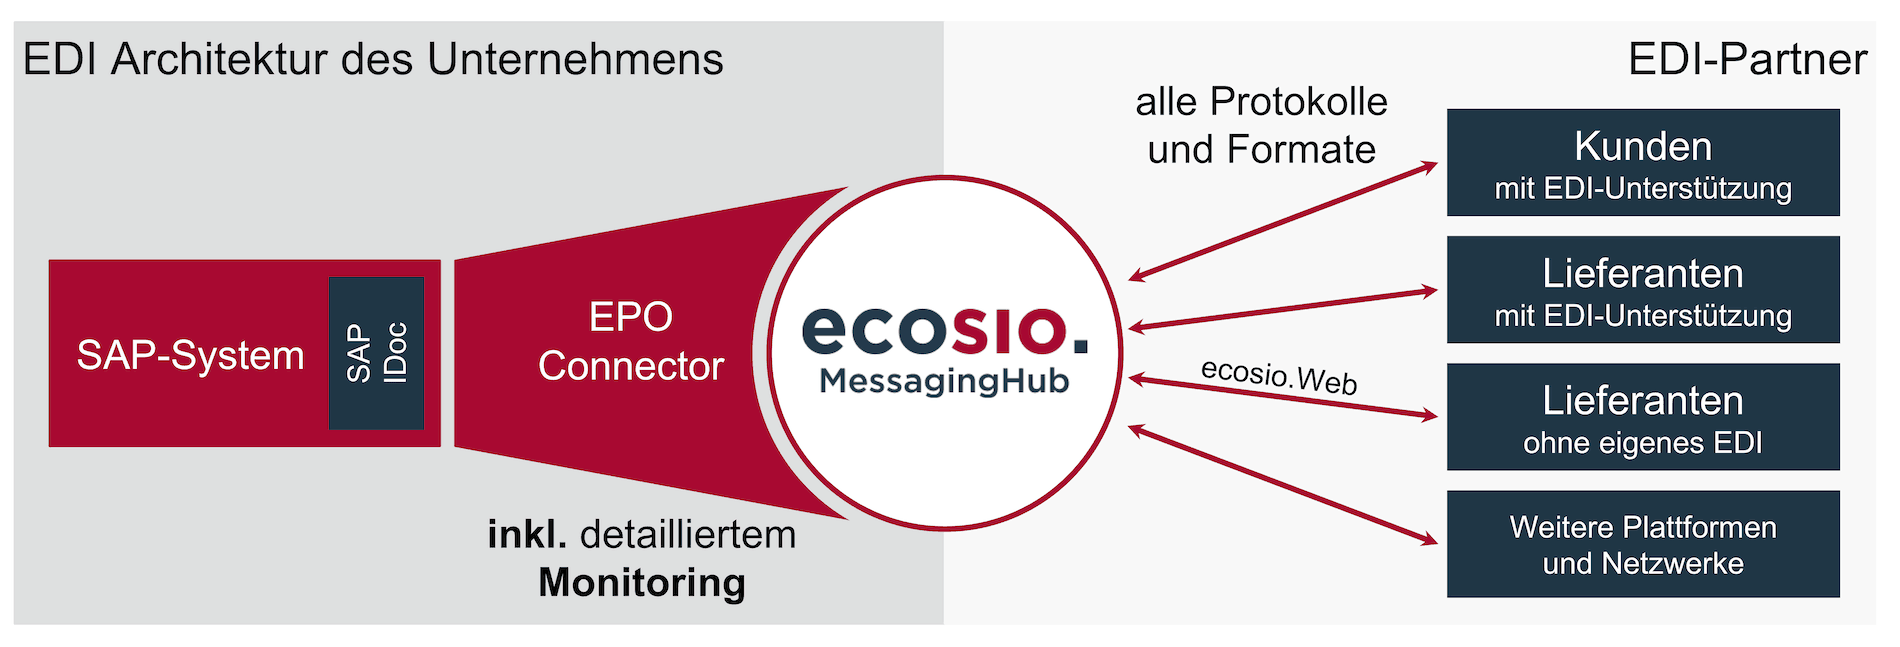 EDI-Workflow mit EPO Connector und ecosio.MessagingHub